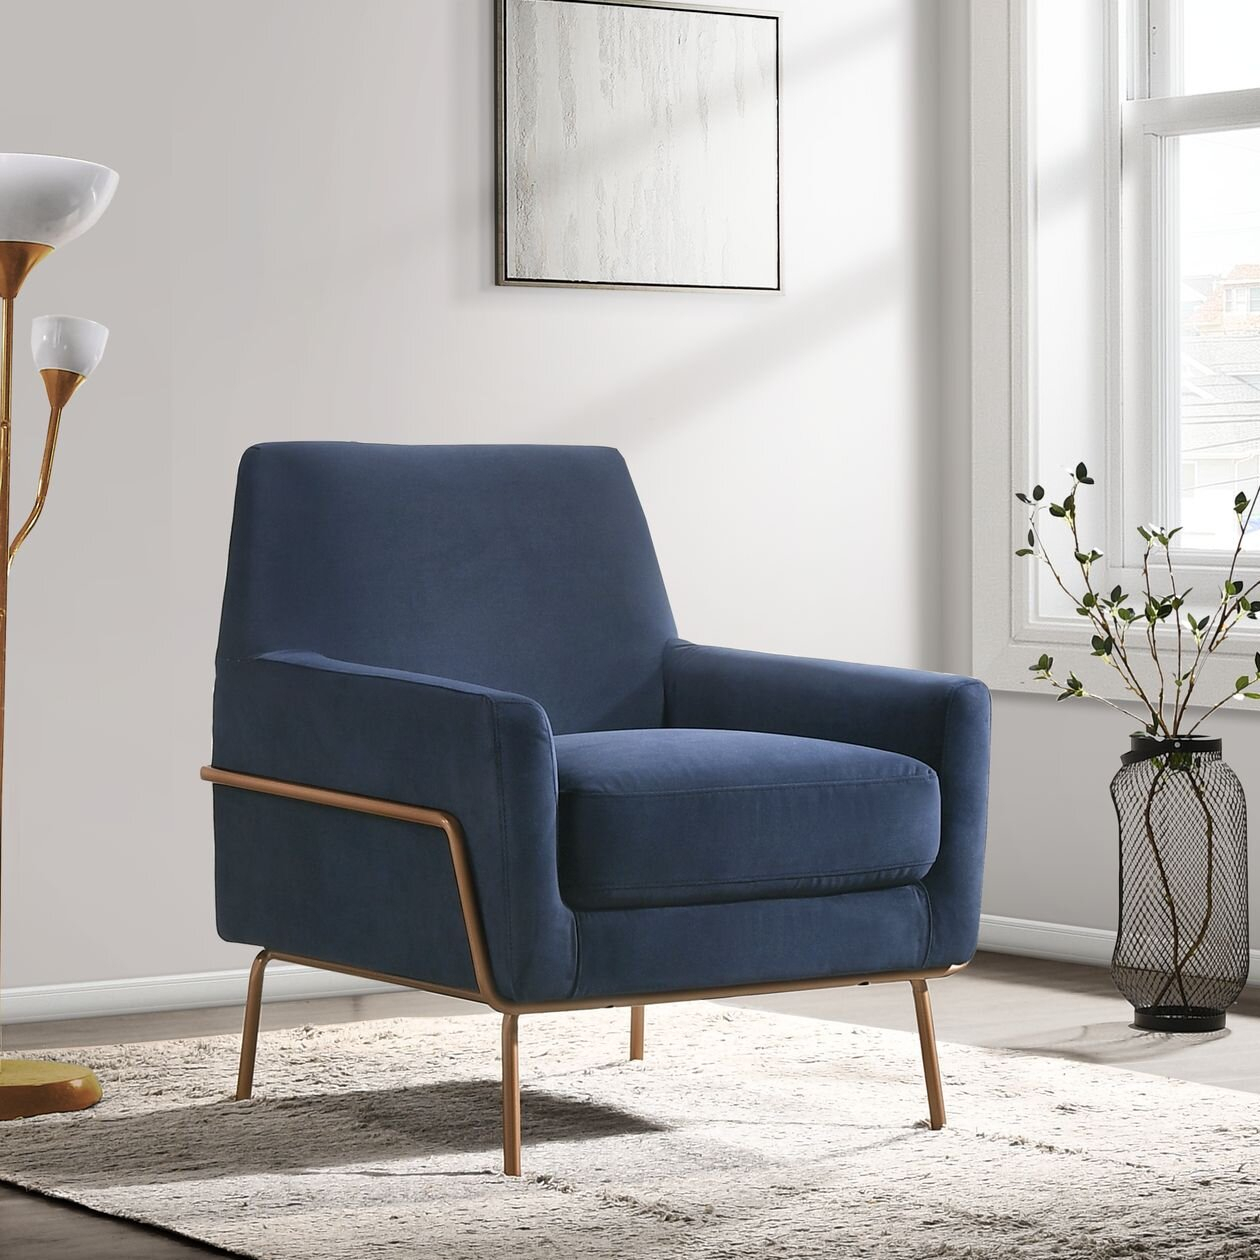 Arm Metal Accent Chairs You'Ll Love In 2021 | Wayfair With Regard To Lakeville Armchairs (View 3 of 15)